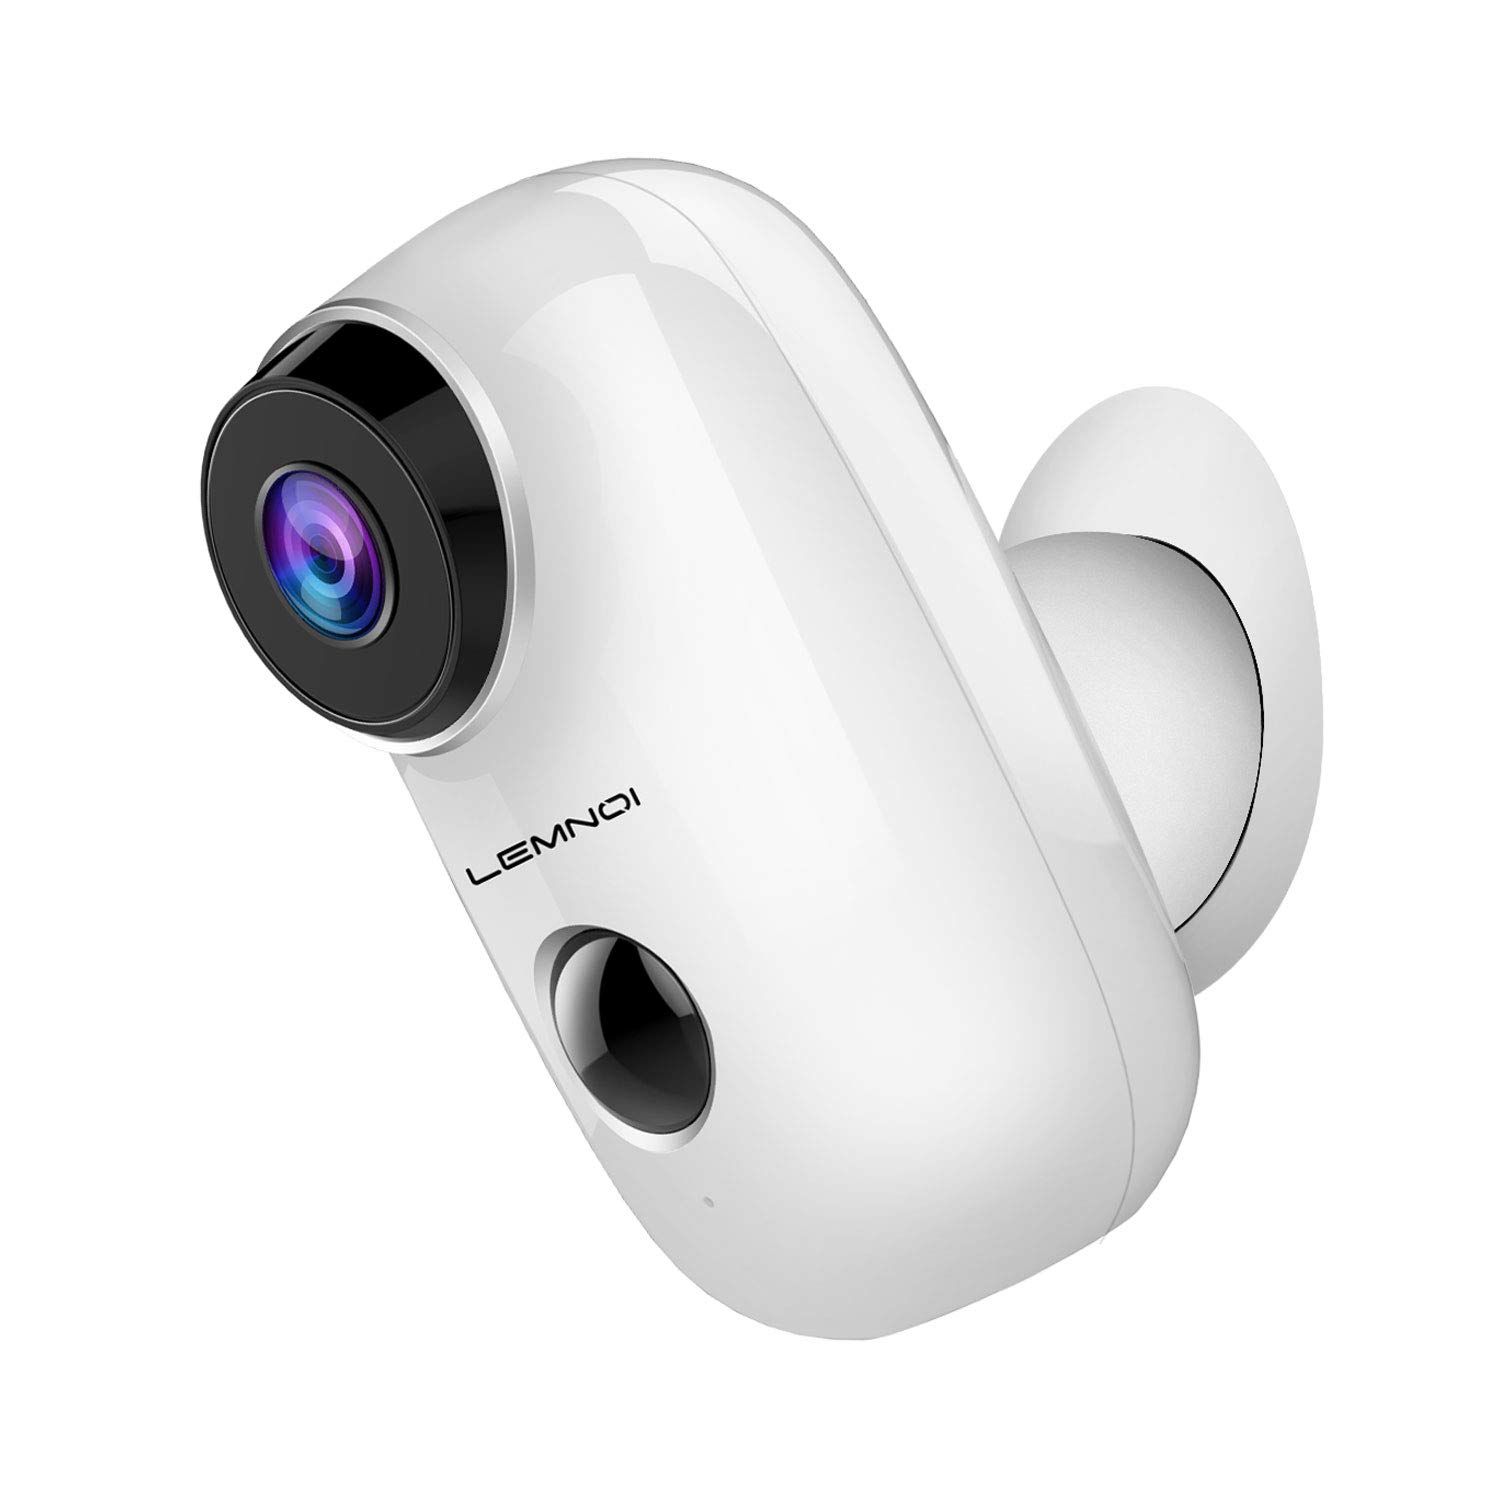 Wireless Rechargeable Battery WiFi Security Camera, Outdoor 1080P Video  Home Surveillance Camera Indoor Baby Cam, PIR Motion Detection, Night  Vision,